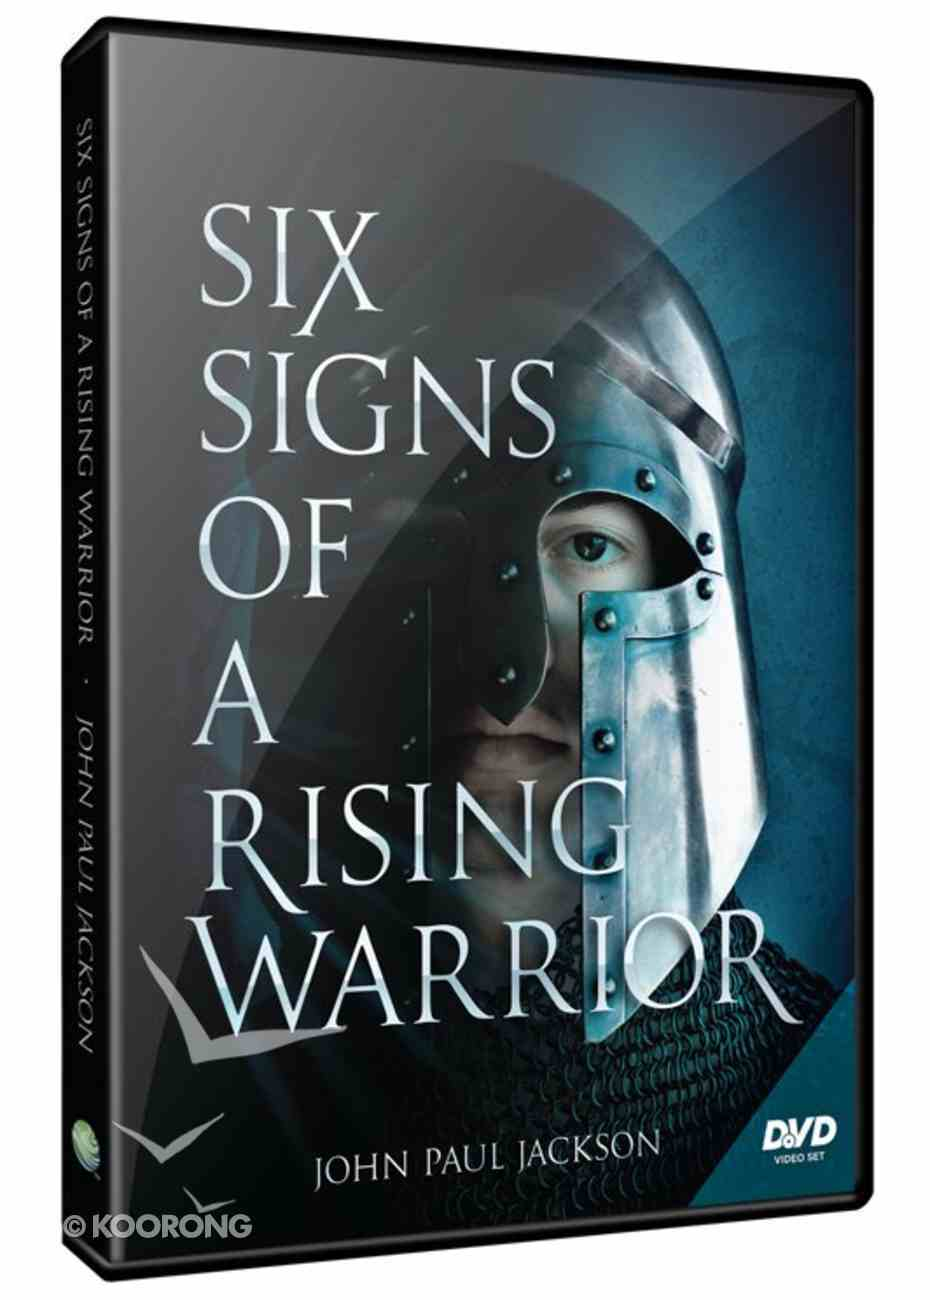 Six Signs of a Rising Warrior DVD